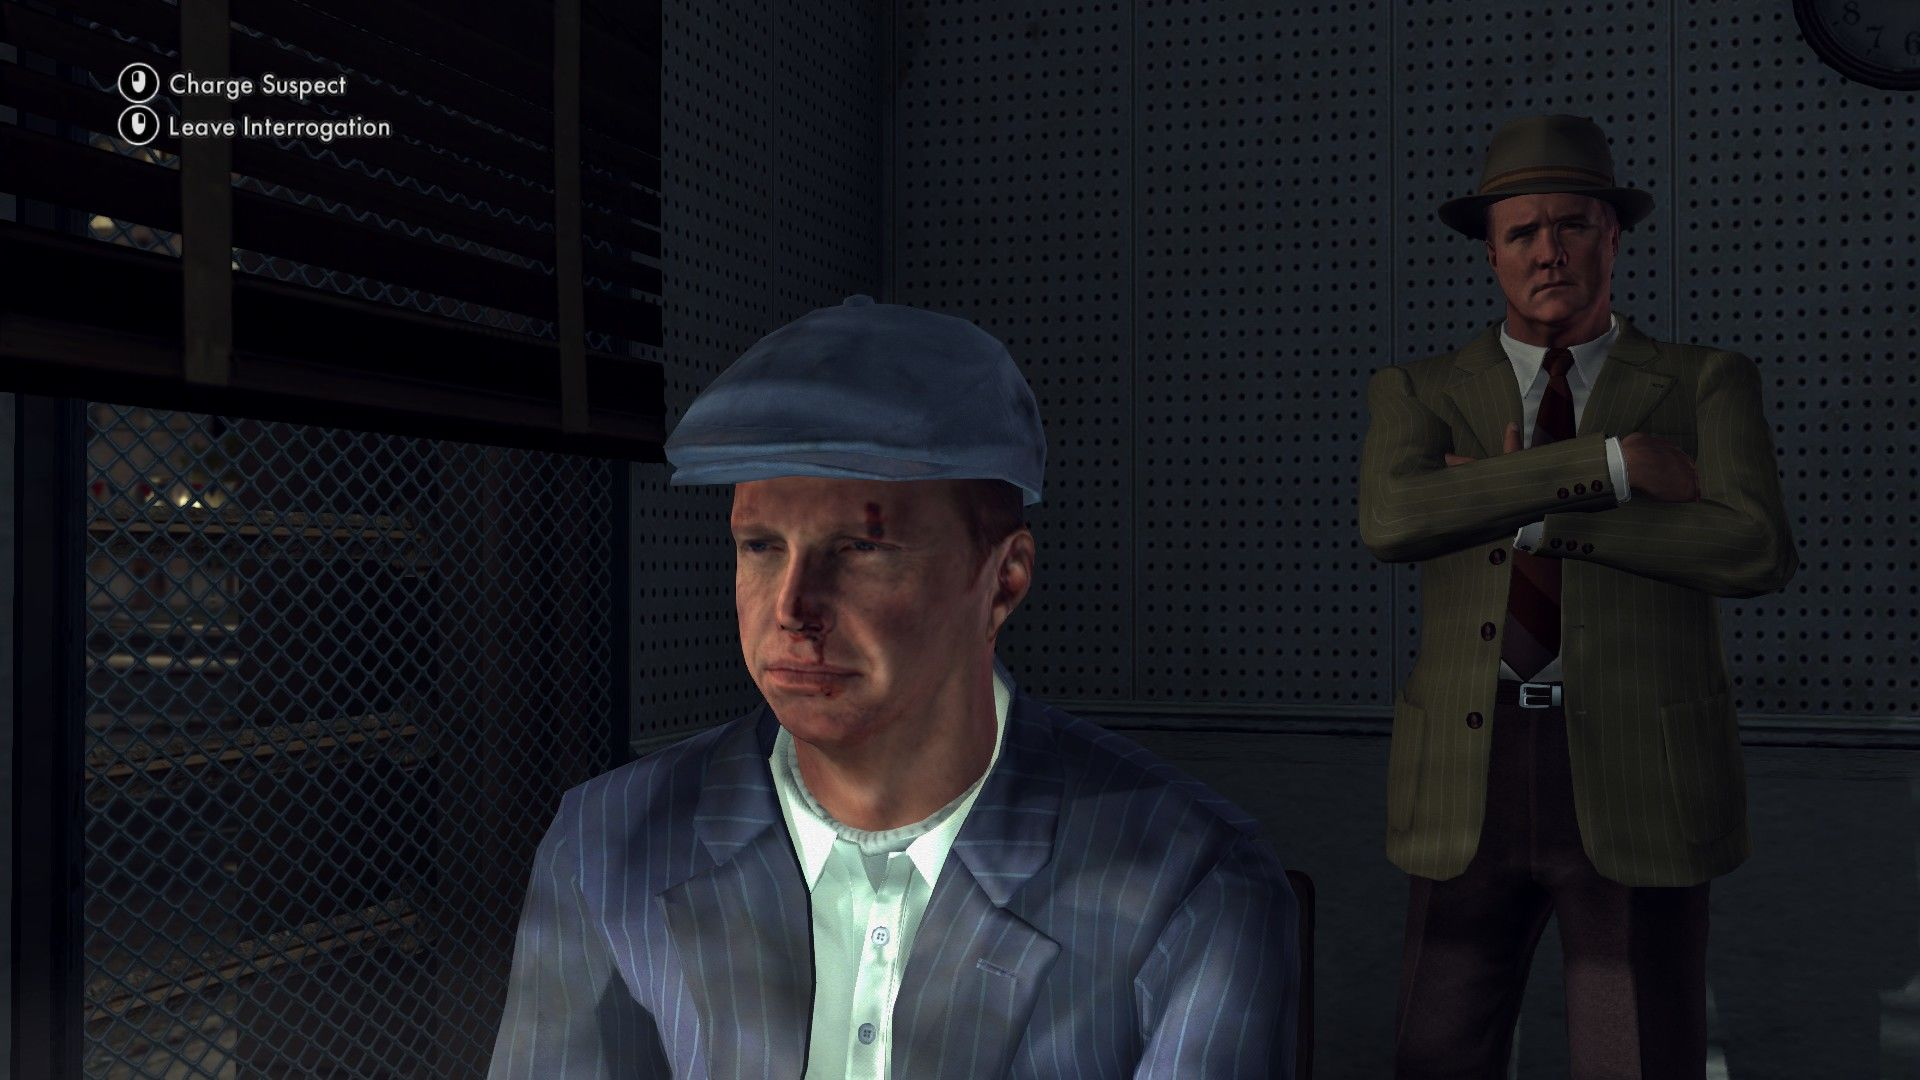 L.A. Noire: The Complete Edition Windows Sometimes you'll have to decide who of the suspects should be charged guilty. Choose wisely.